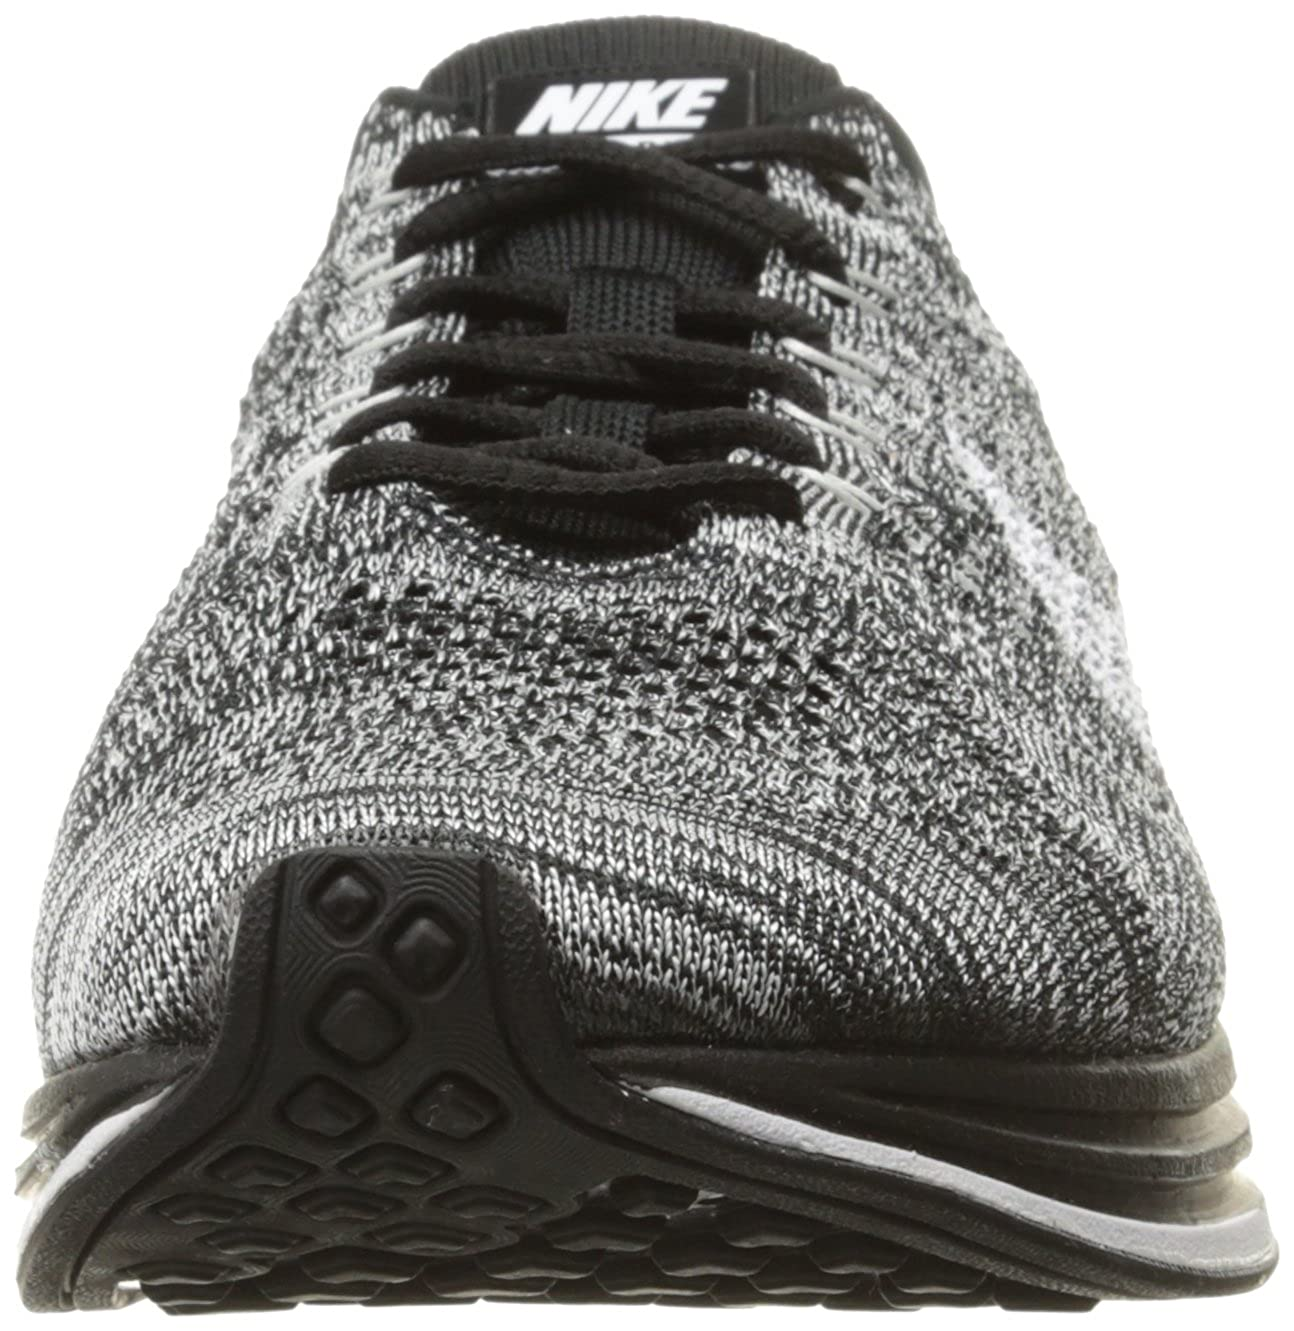 new arrivals 11ae6 1cbec Nike Flyknit Racer, Men s Flyknit Racer  Amazon.co.uk  Shoes   Bags